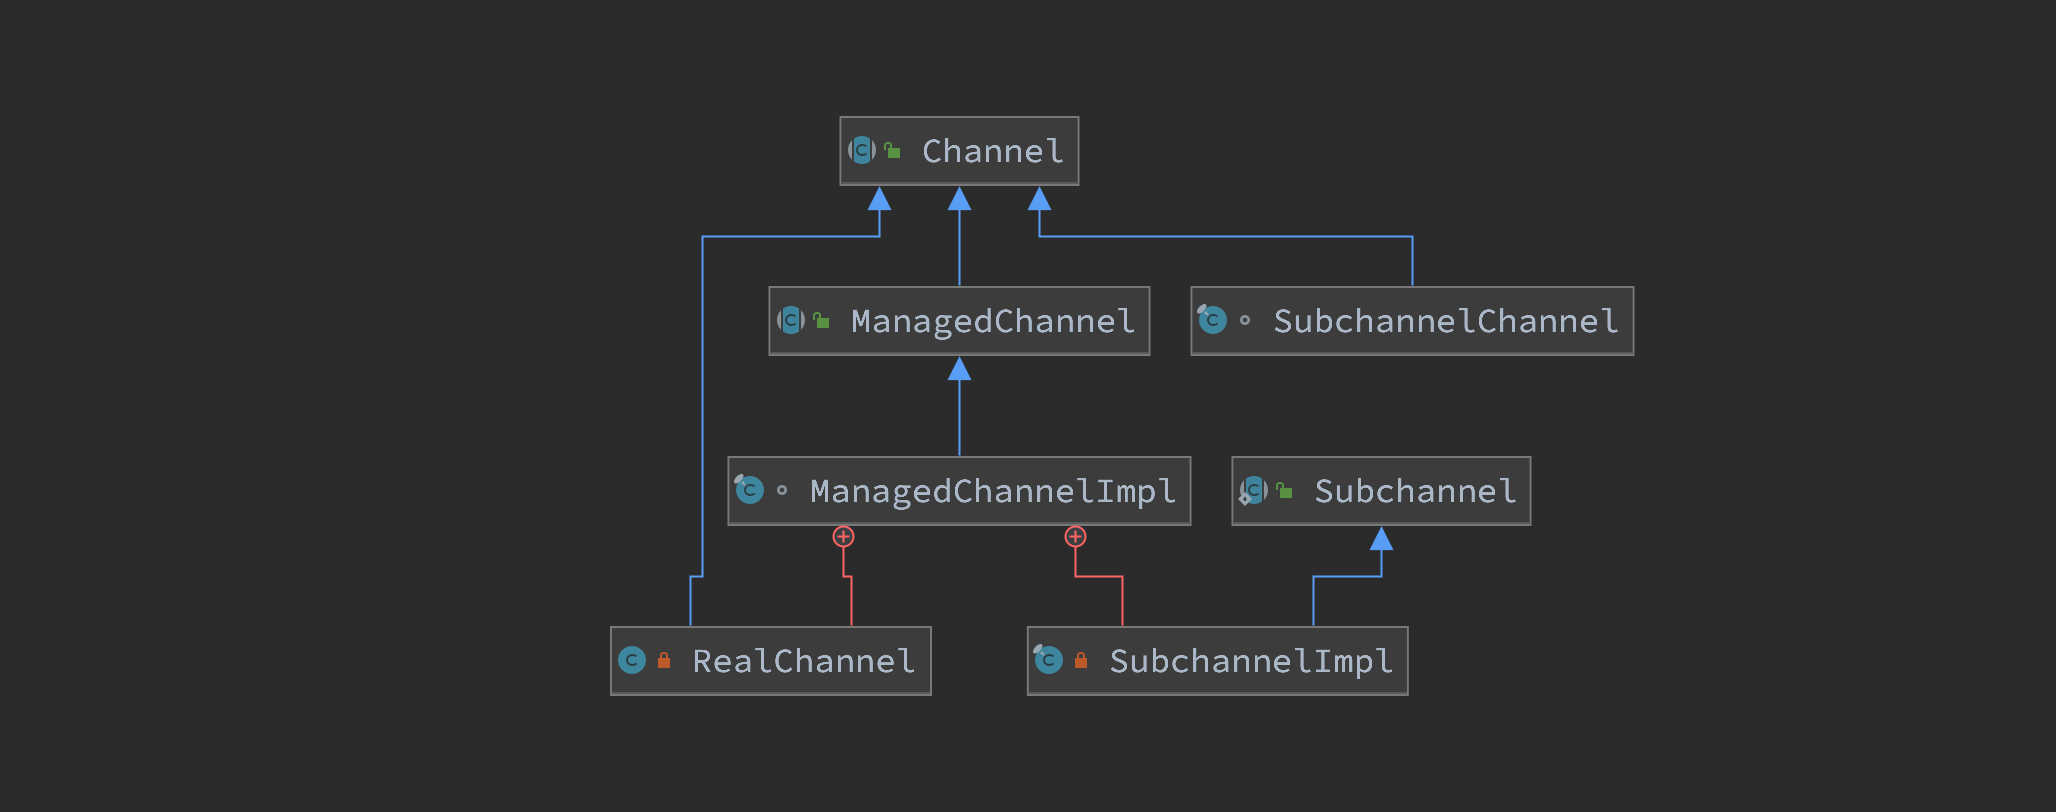 grpc-source-code-channel-class-diagram.png